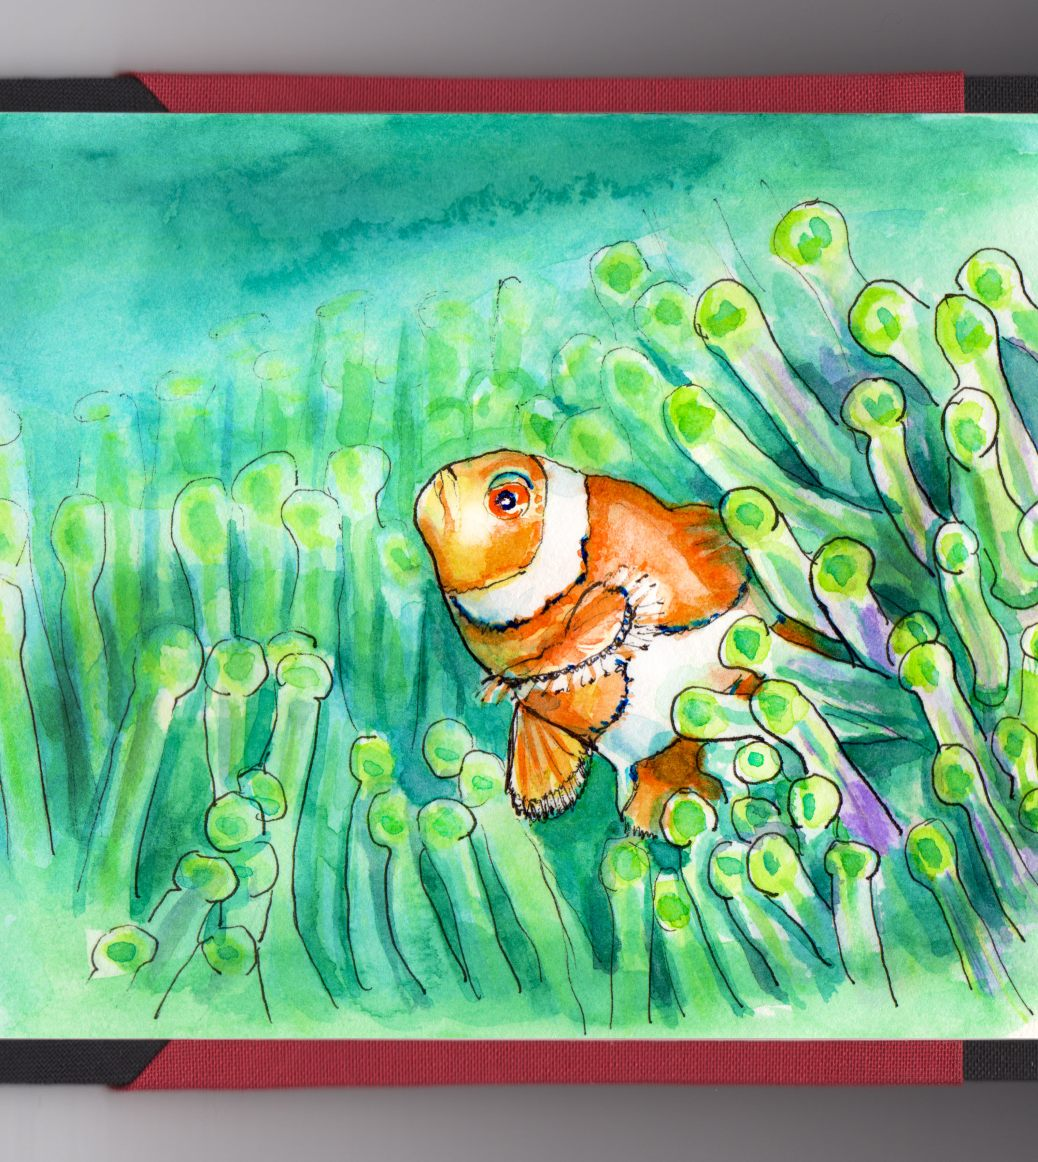 Day 1 - #WorldWatercolorGroup Sea Life Clownfish Clown Fish In Sea Anemone